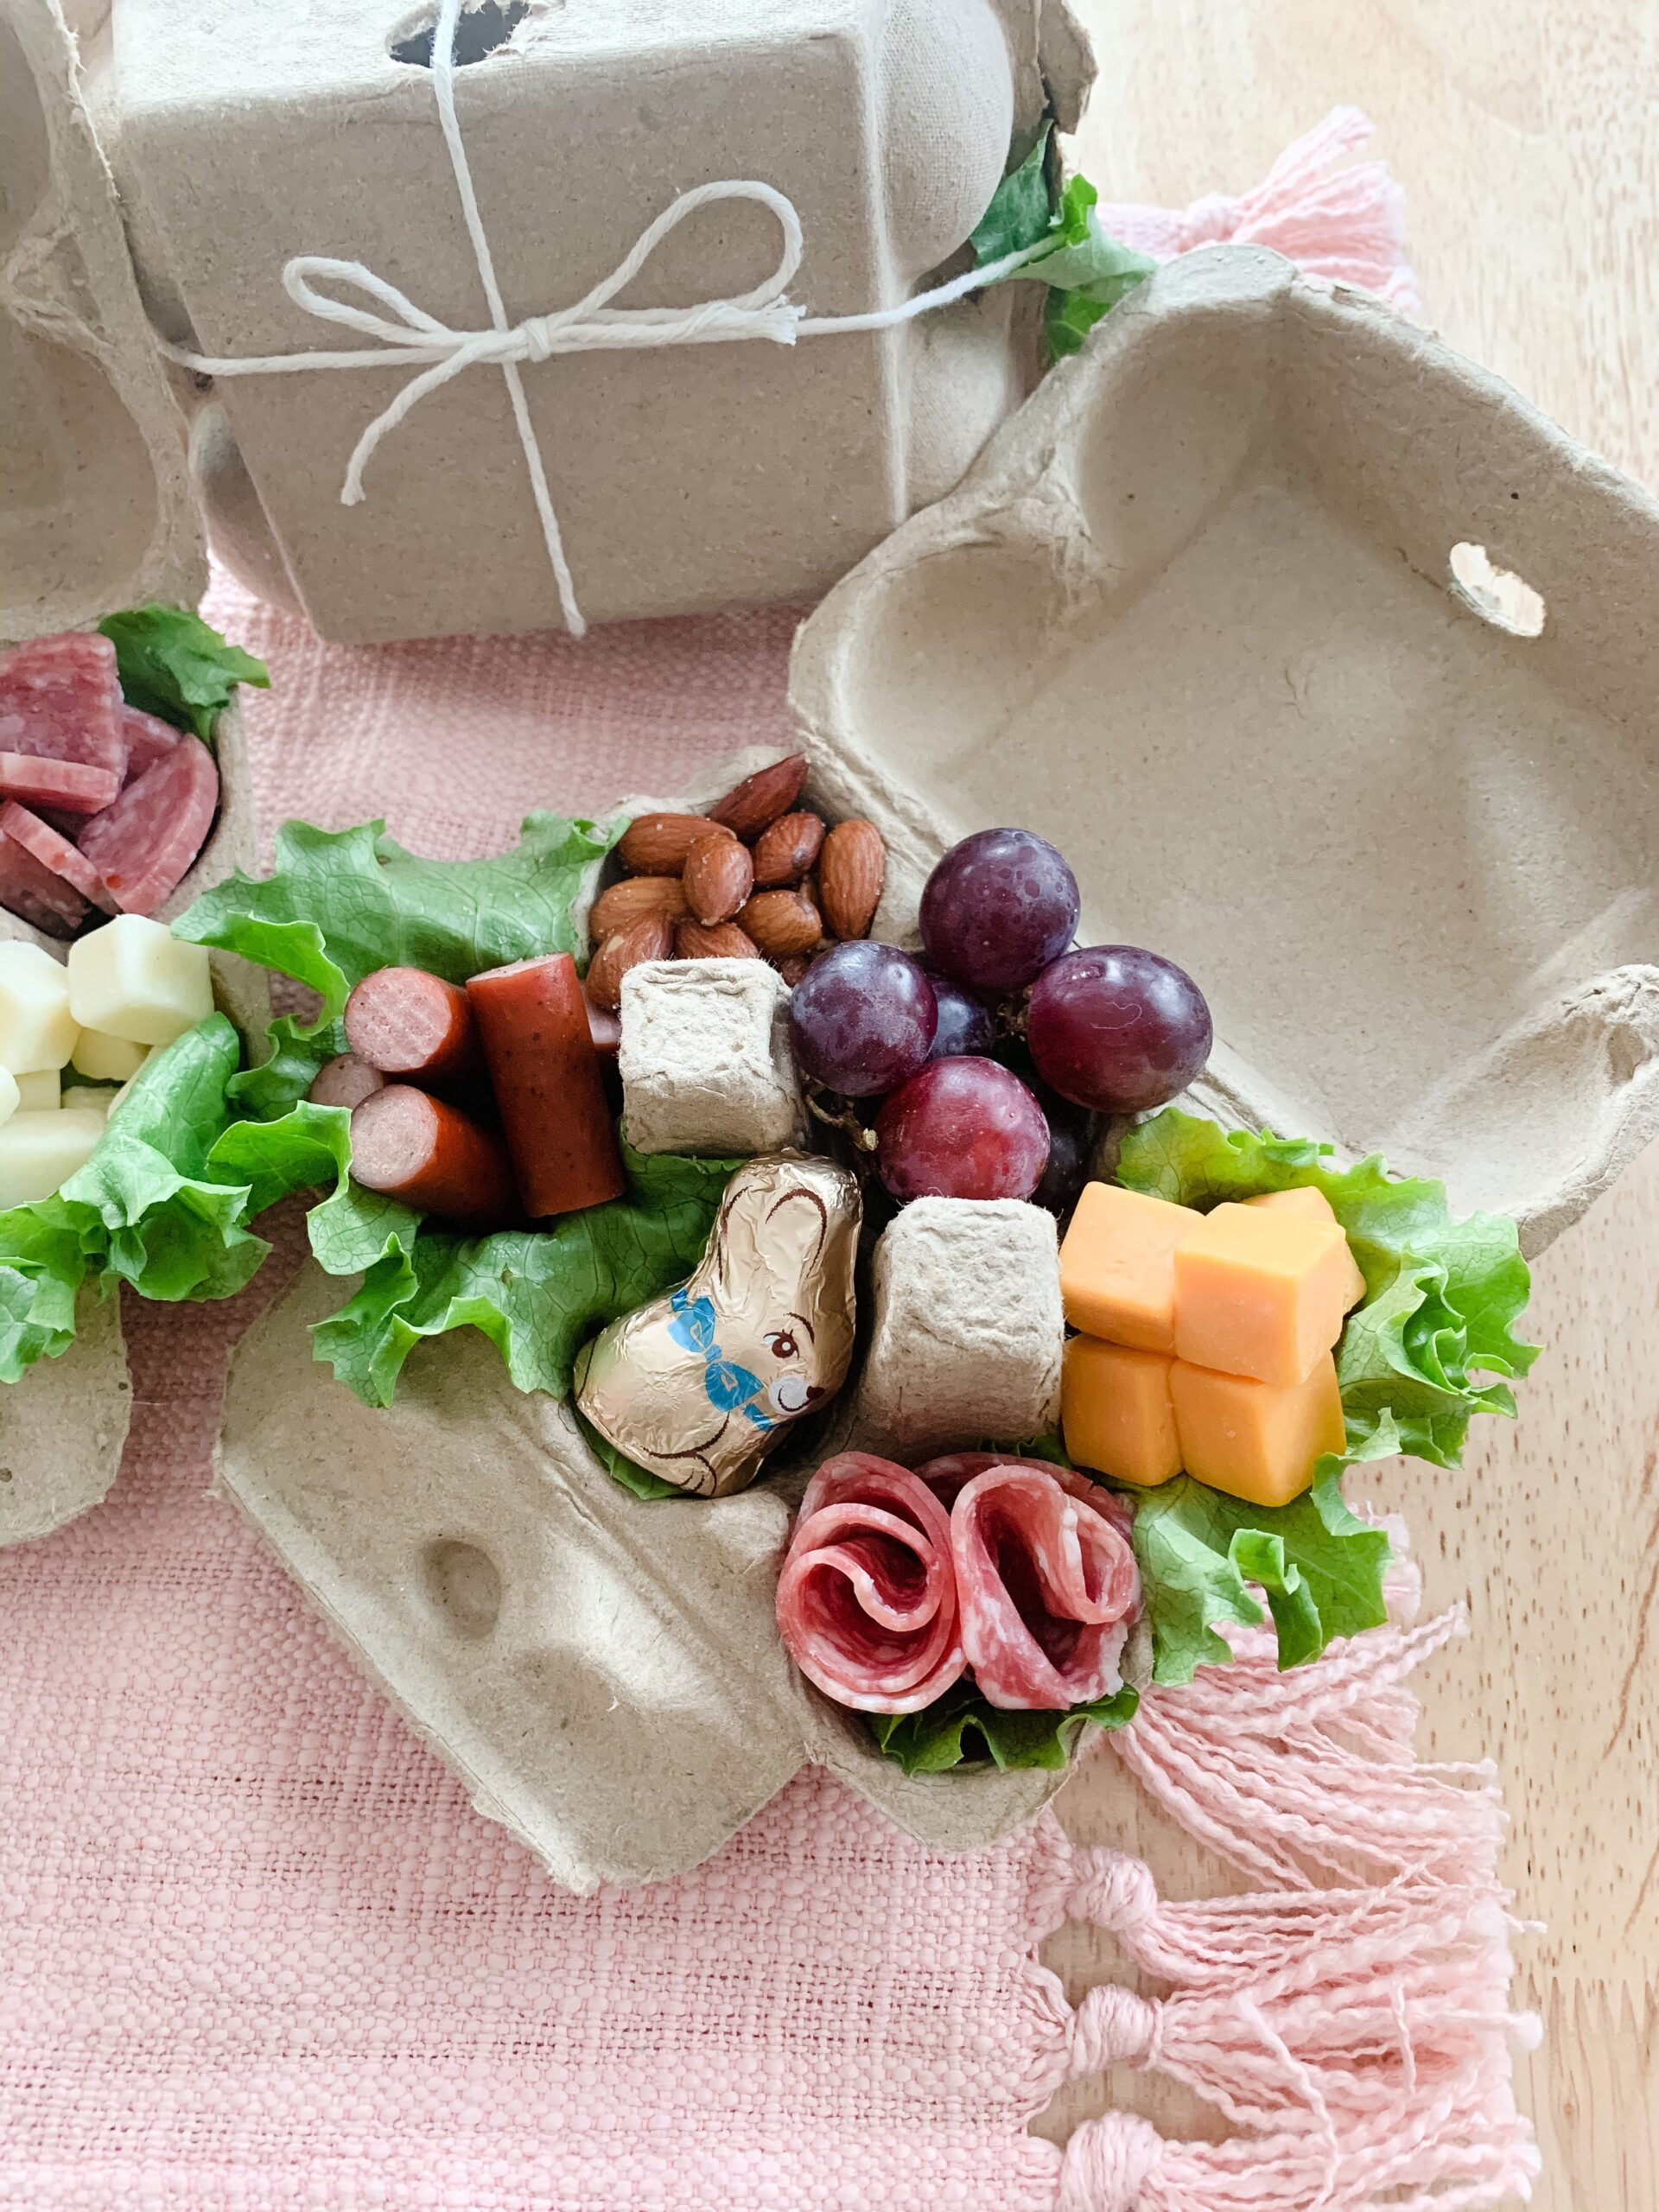 assorted meats and cheeses in an egg carton charcuterie